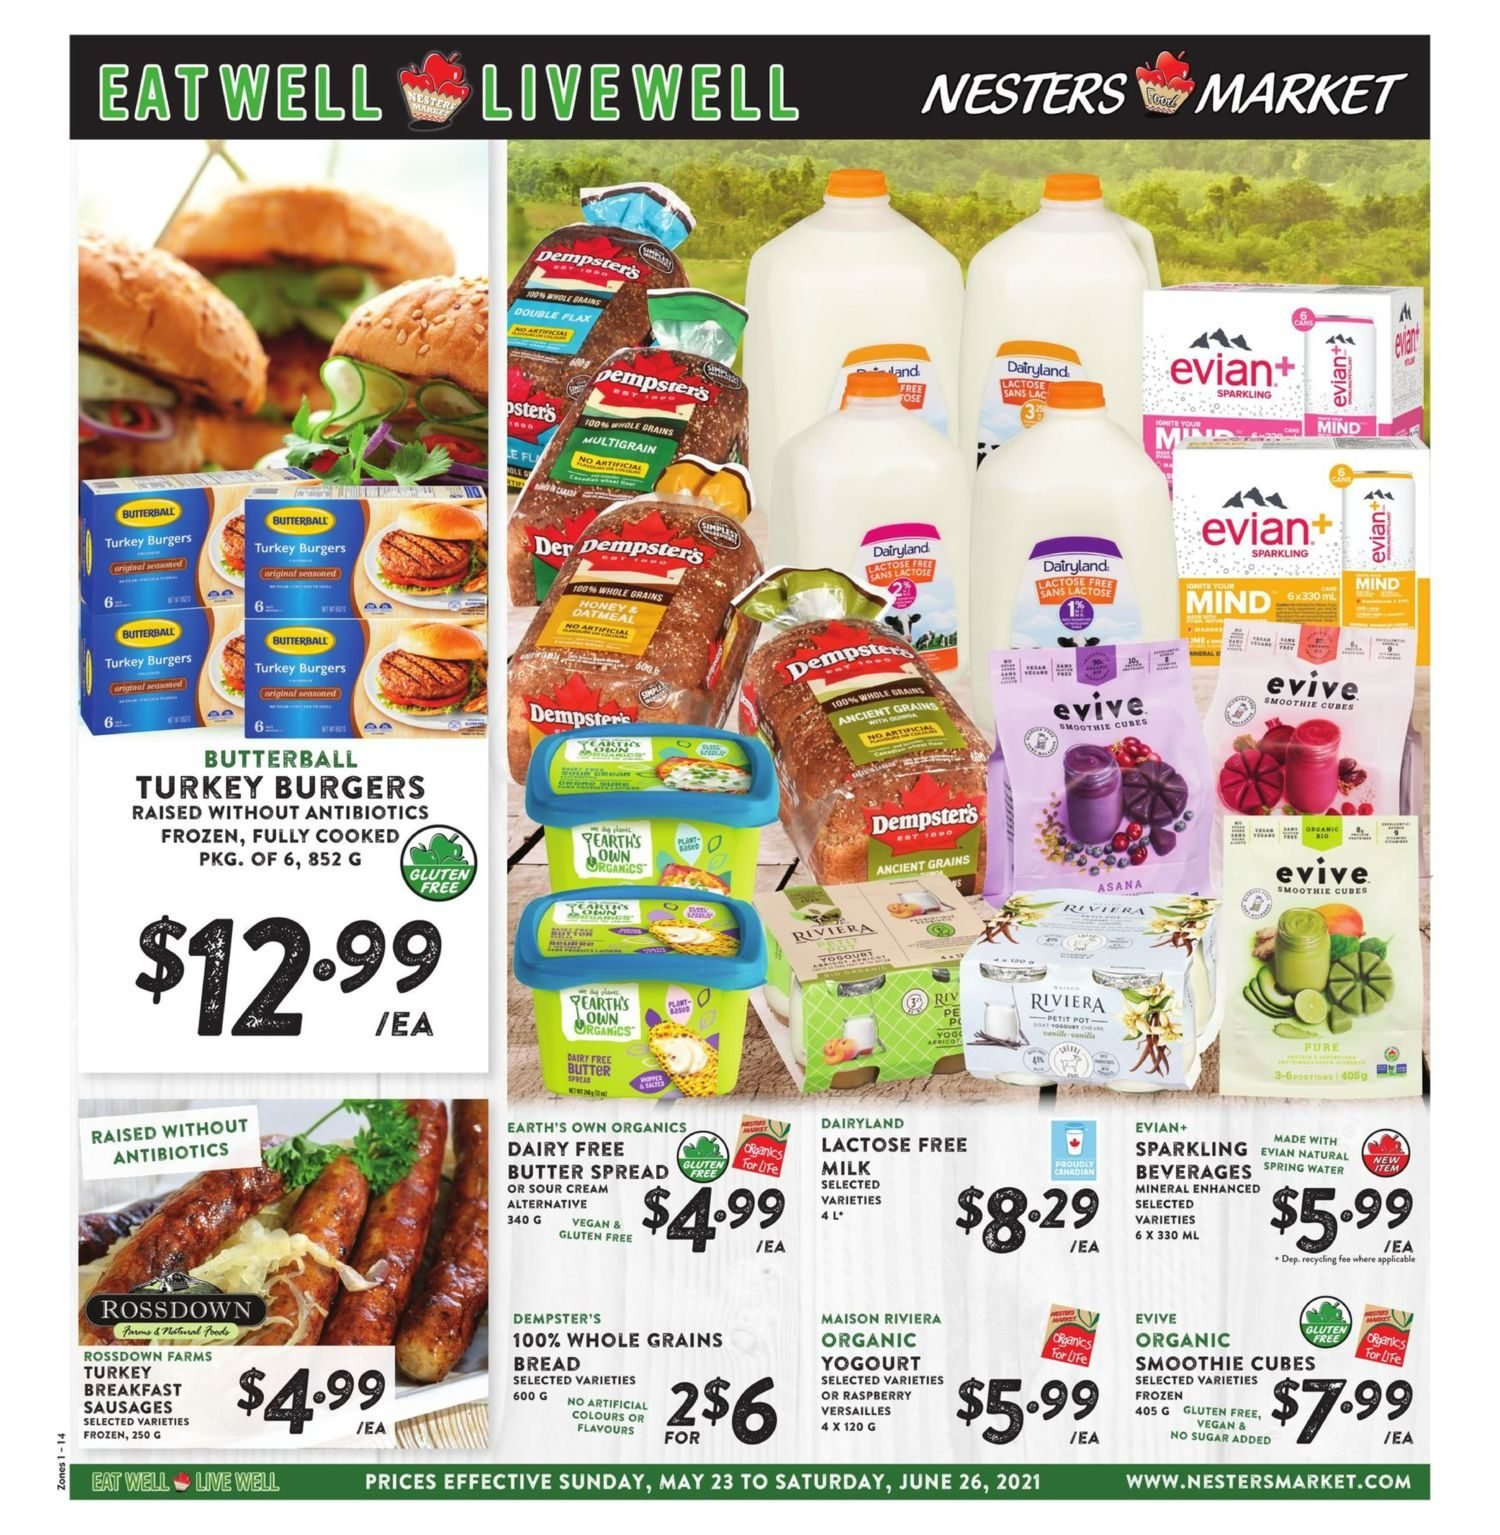 Nesters Market - Eat Well, Live Well